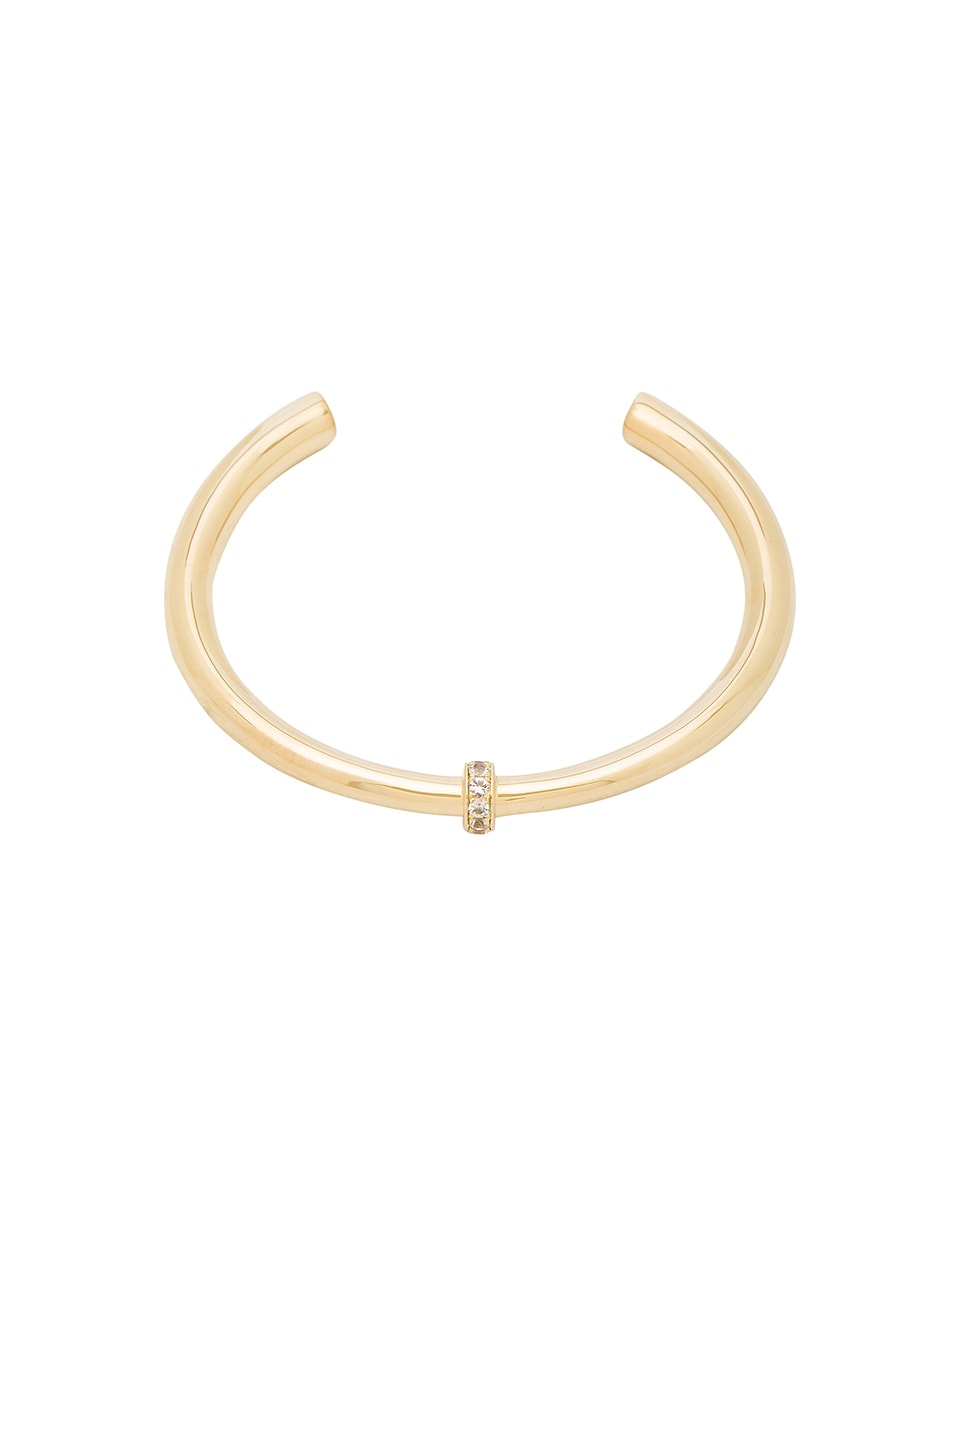 Elizabeth and James Fiona Cuff in Yellow Gold